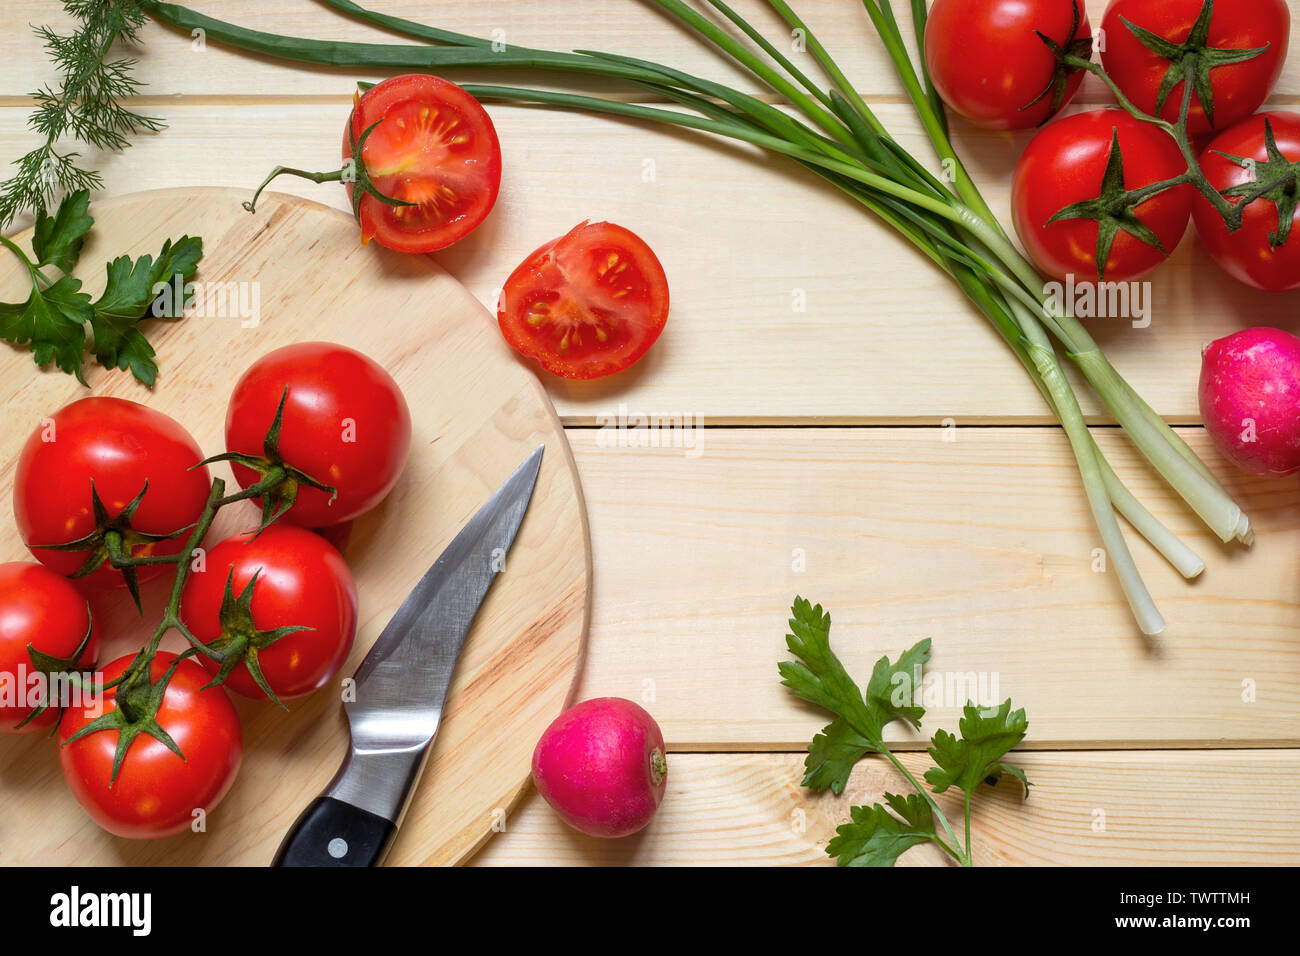 Healthy food cooking concept. Fresh tomatoes on branch, radish, onion, dill and parsley laid out on rustic light wooden table. Knife on kitchen board. Stock Photo